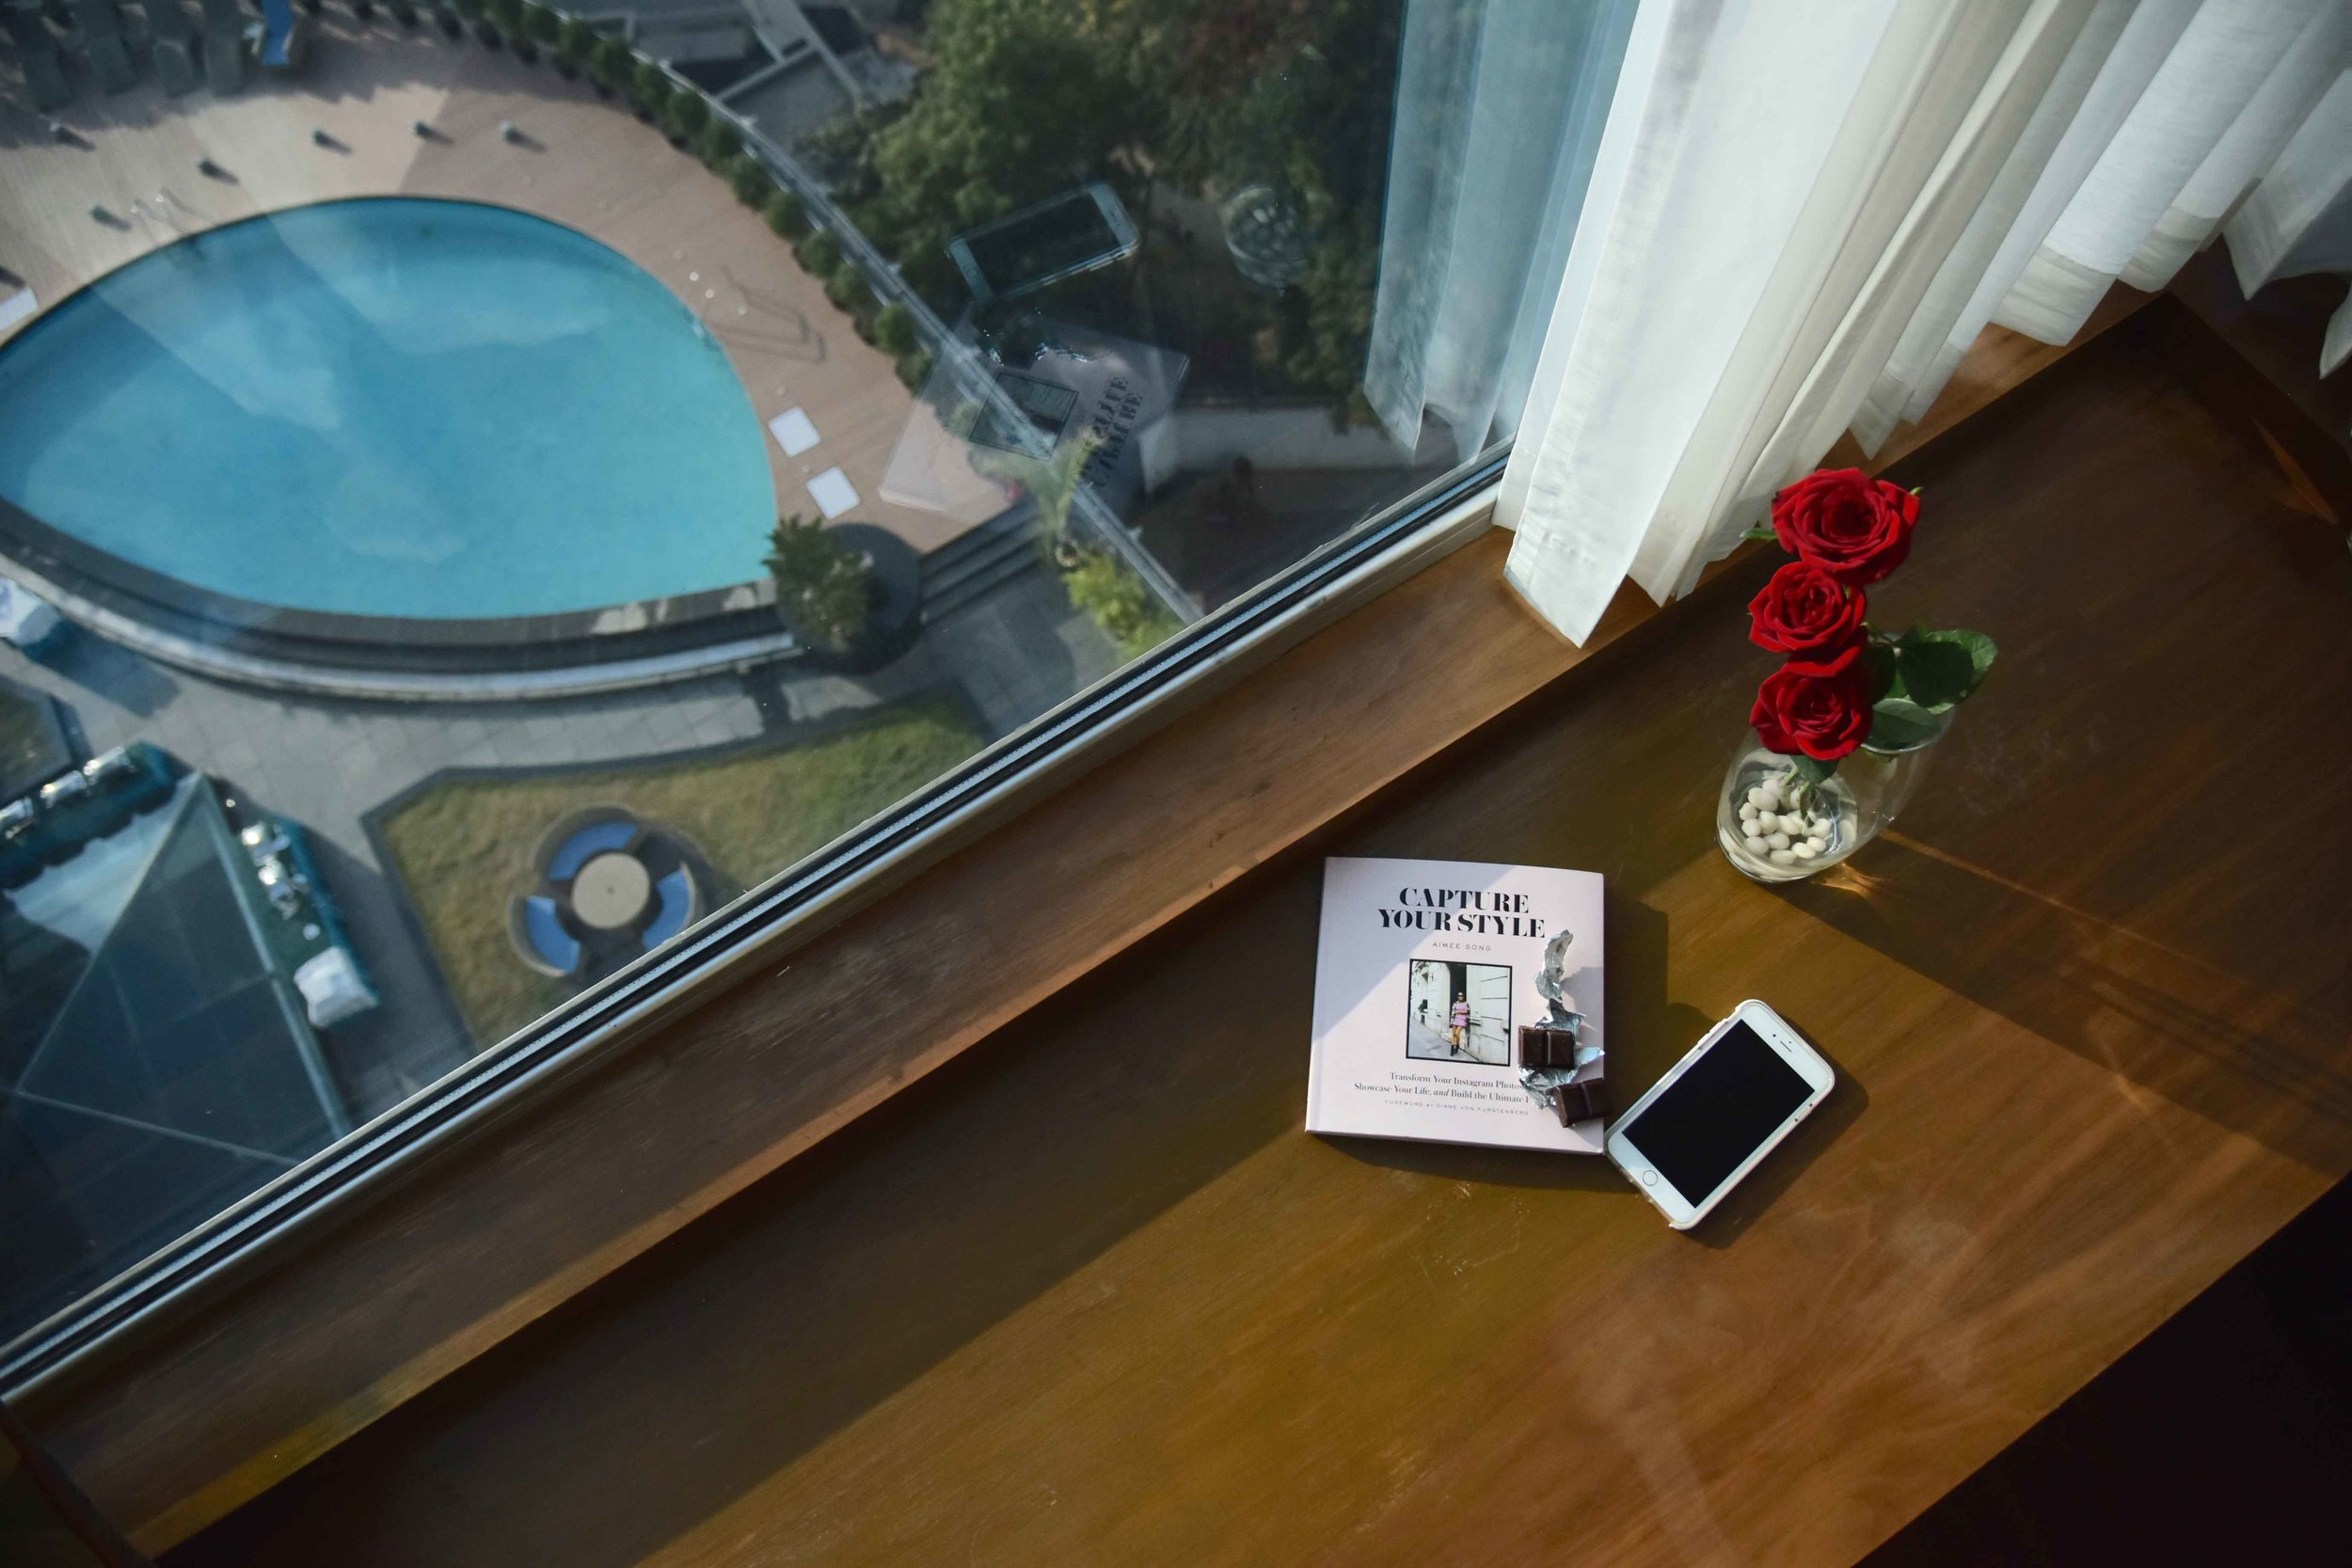 Radisson Blu Hotel, a view of the pool from my room, Ranchi, Jharkhand, India. Image©sourcingstyle.com.